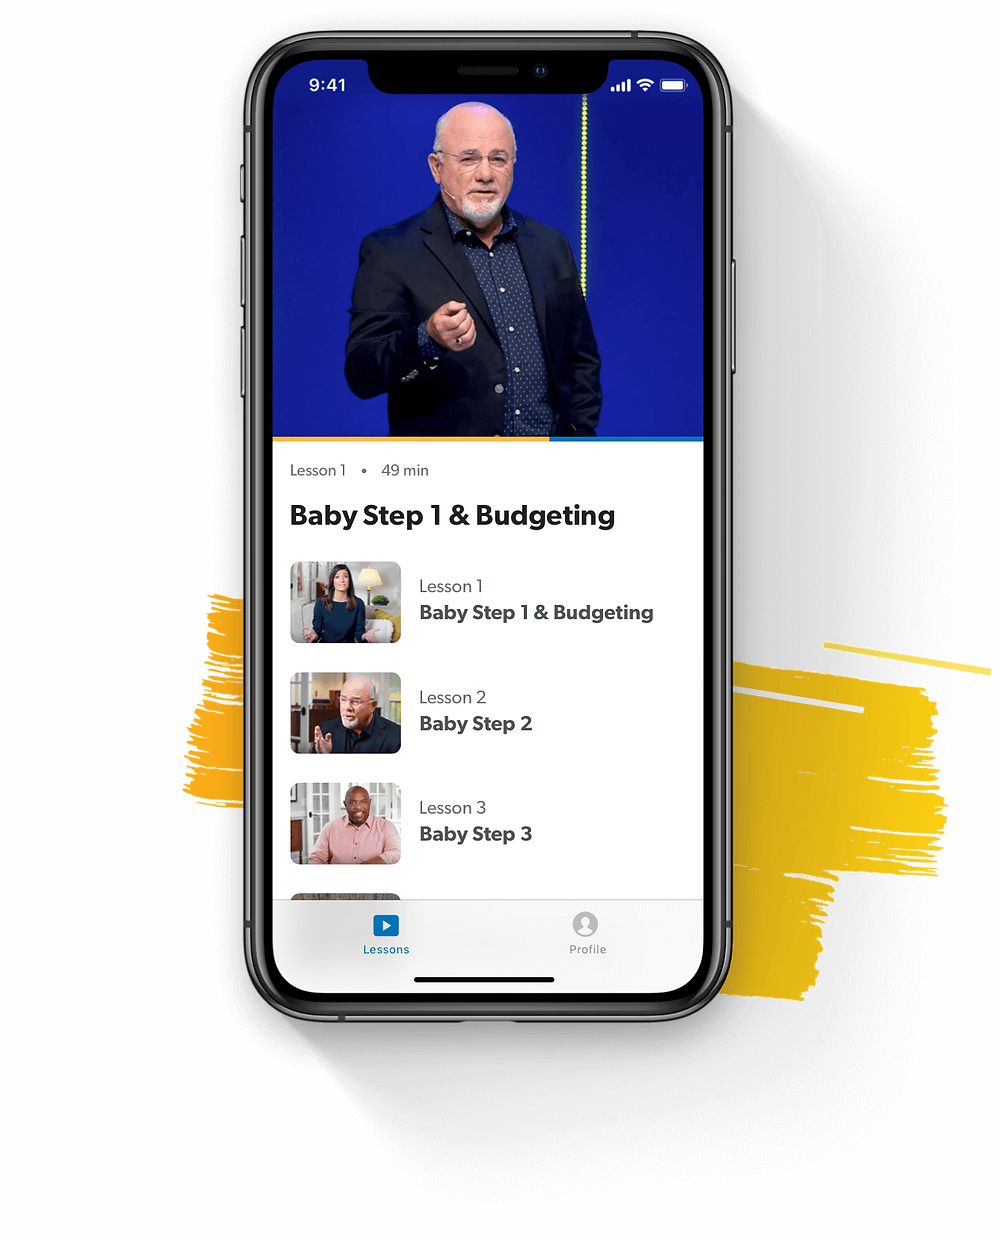 https://www.daveramsey.com/fpu?int_cmpgn=no_campaign&int_dept=fpu_bu&int_lctn=No_Specific_Location&int_fmt=button&int_dscpn=get_started_debt_fpu_trial_may2020&campaign_id=&lead_source=Digital_Content